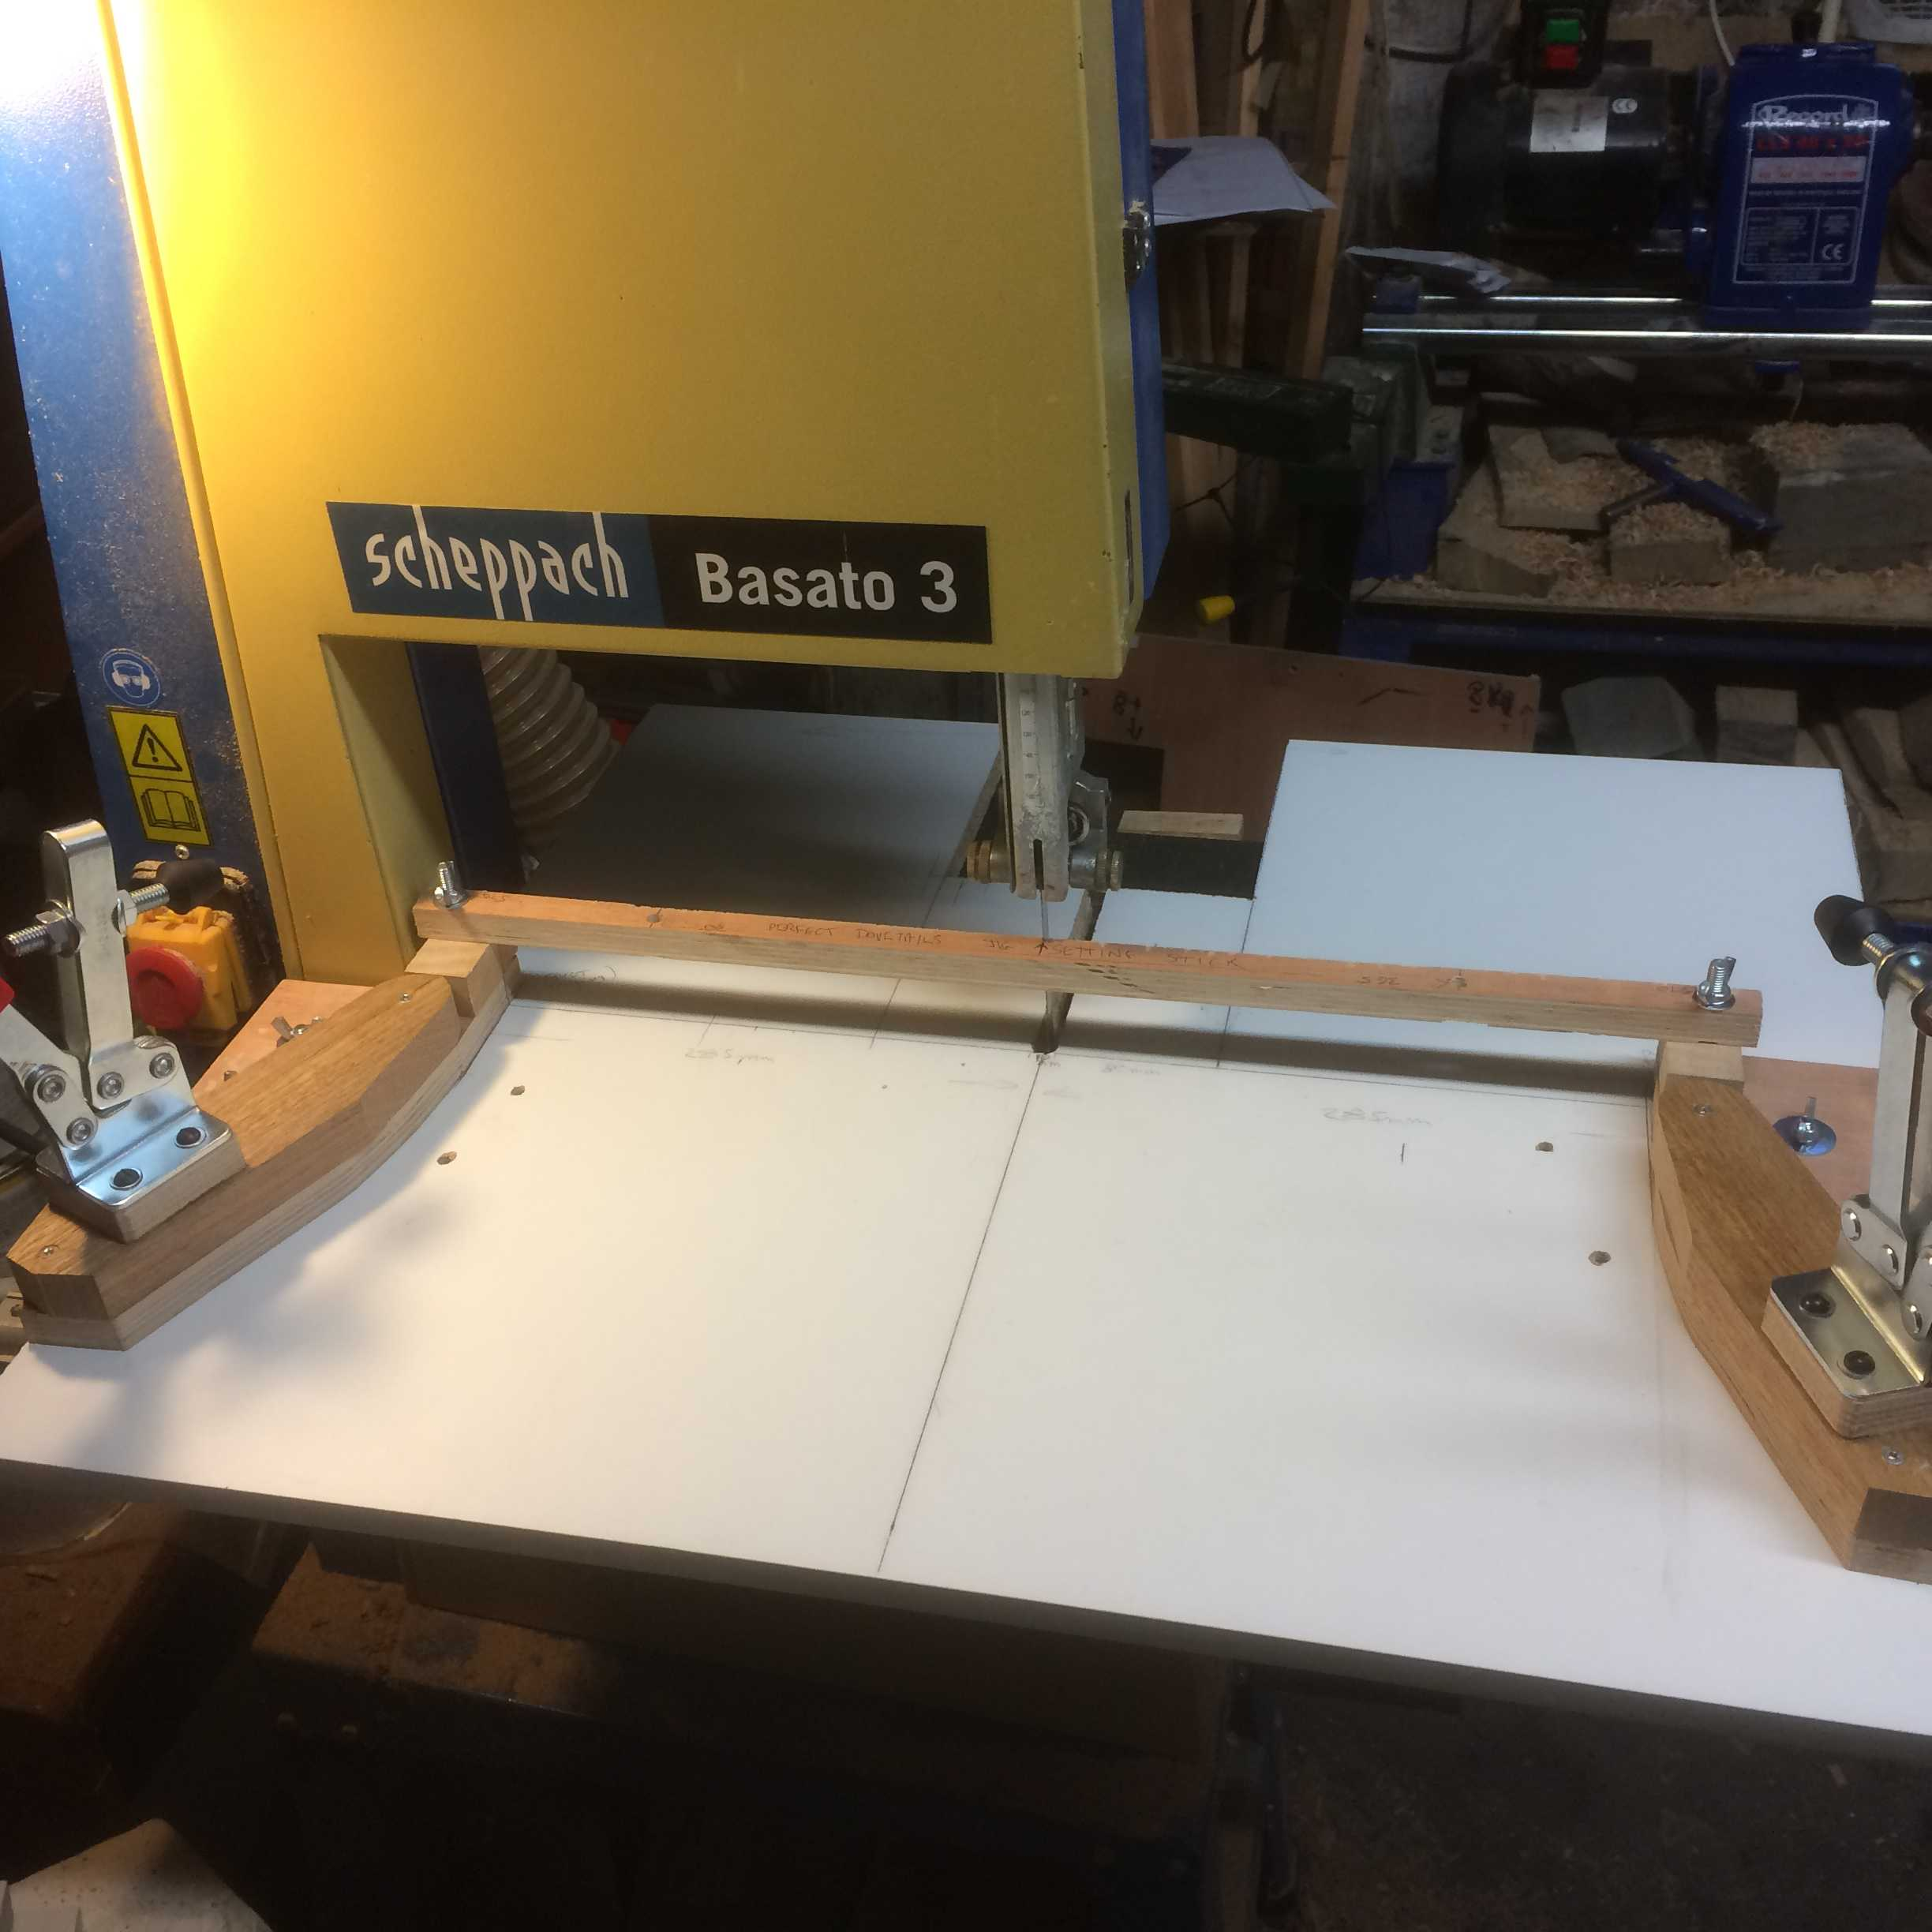 Finished jig base with set-up